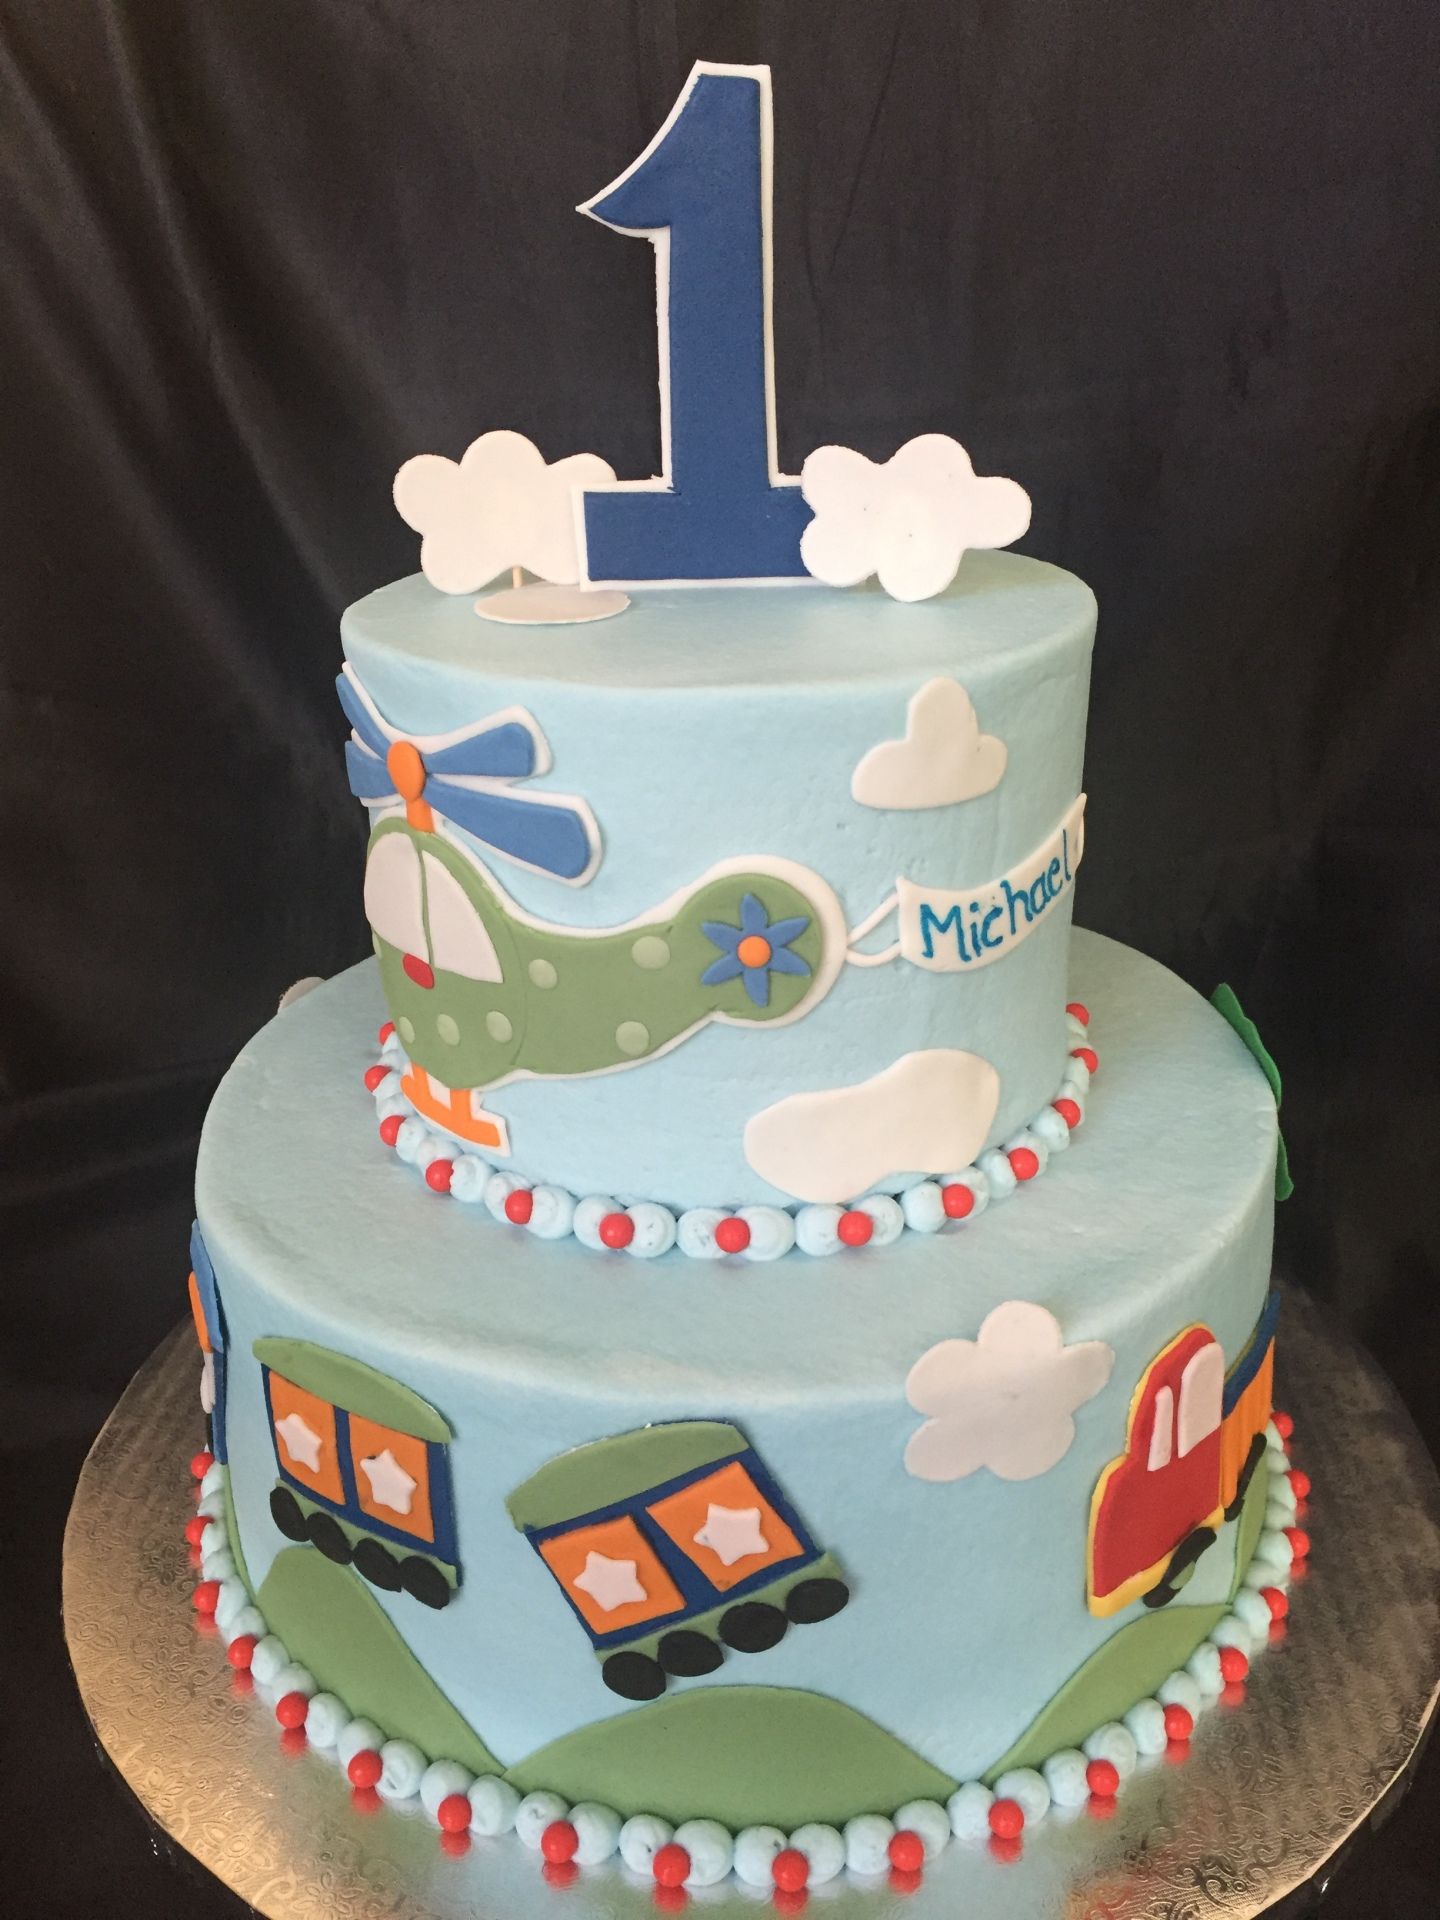 1st birthday cake, train cars plane cake